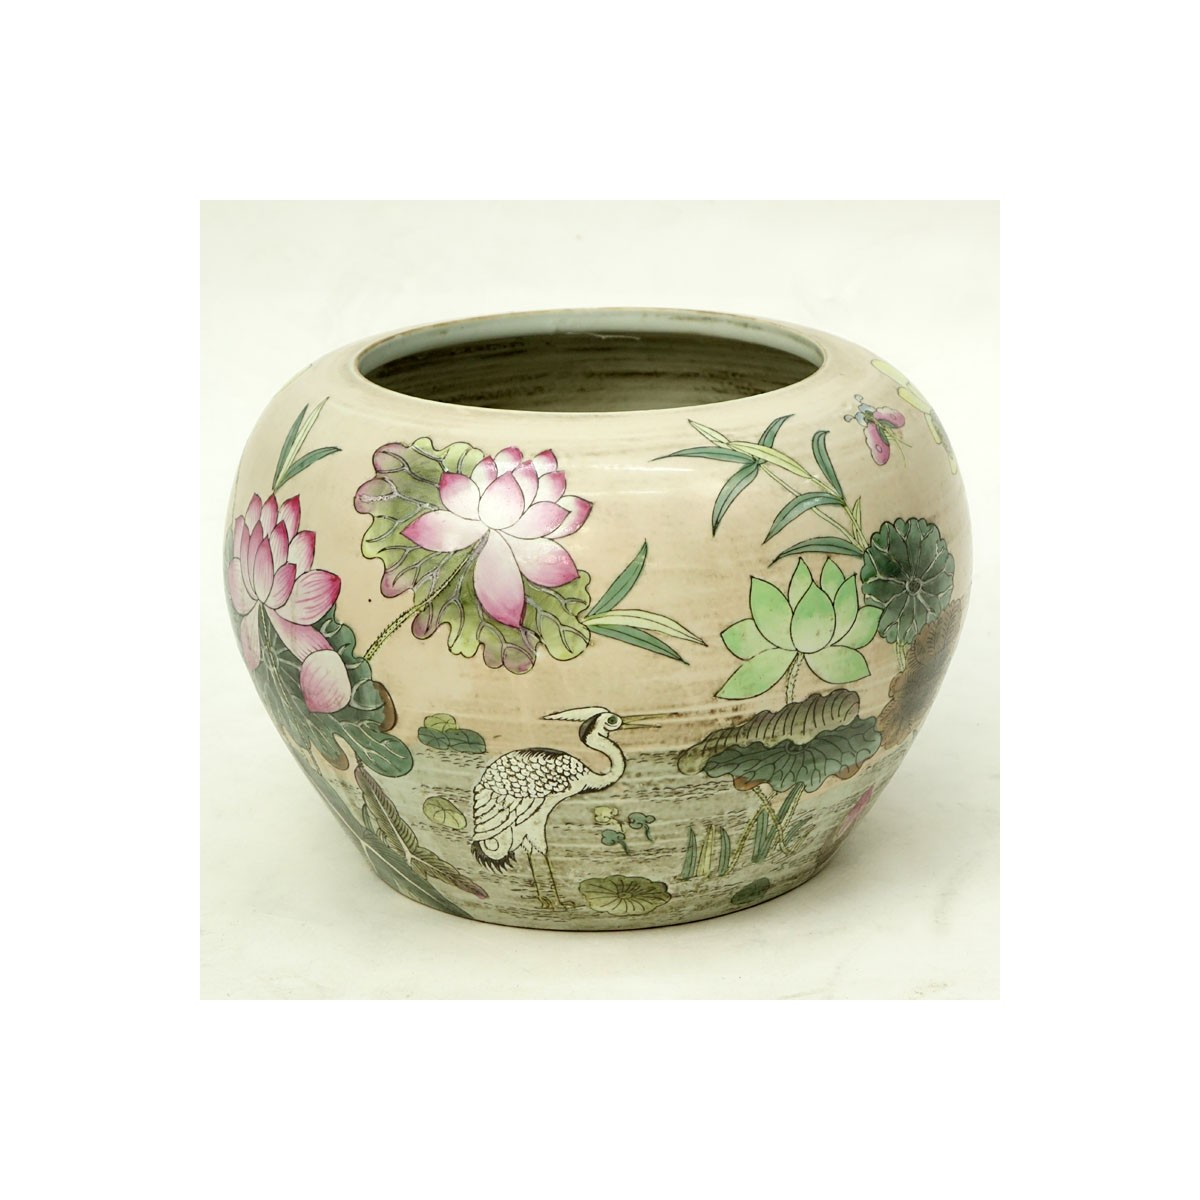 20th Century Chinese  Porcelain Jardinière. Depicts a enamel floral painted pond scene with water l